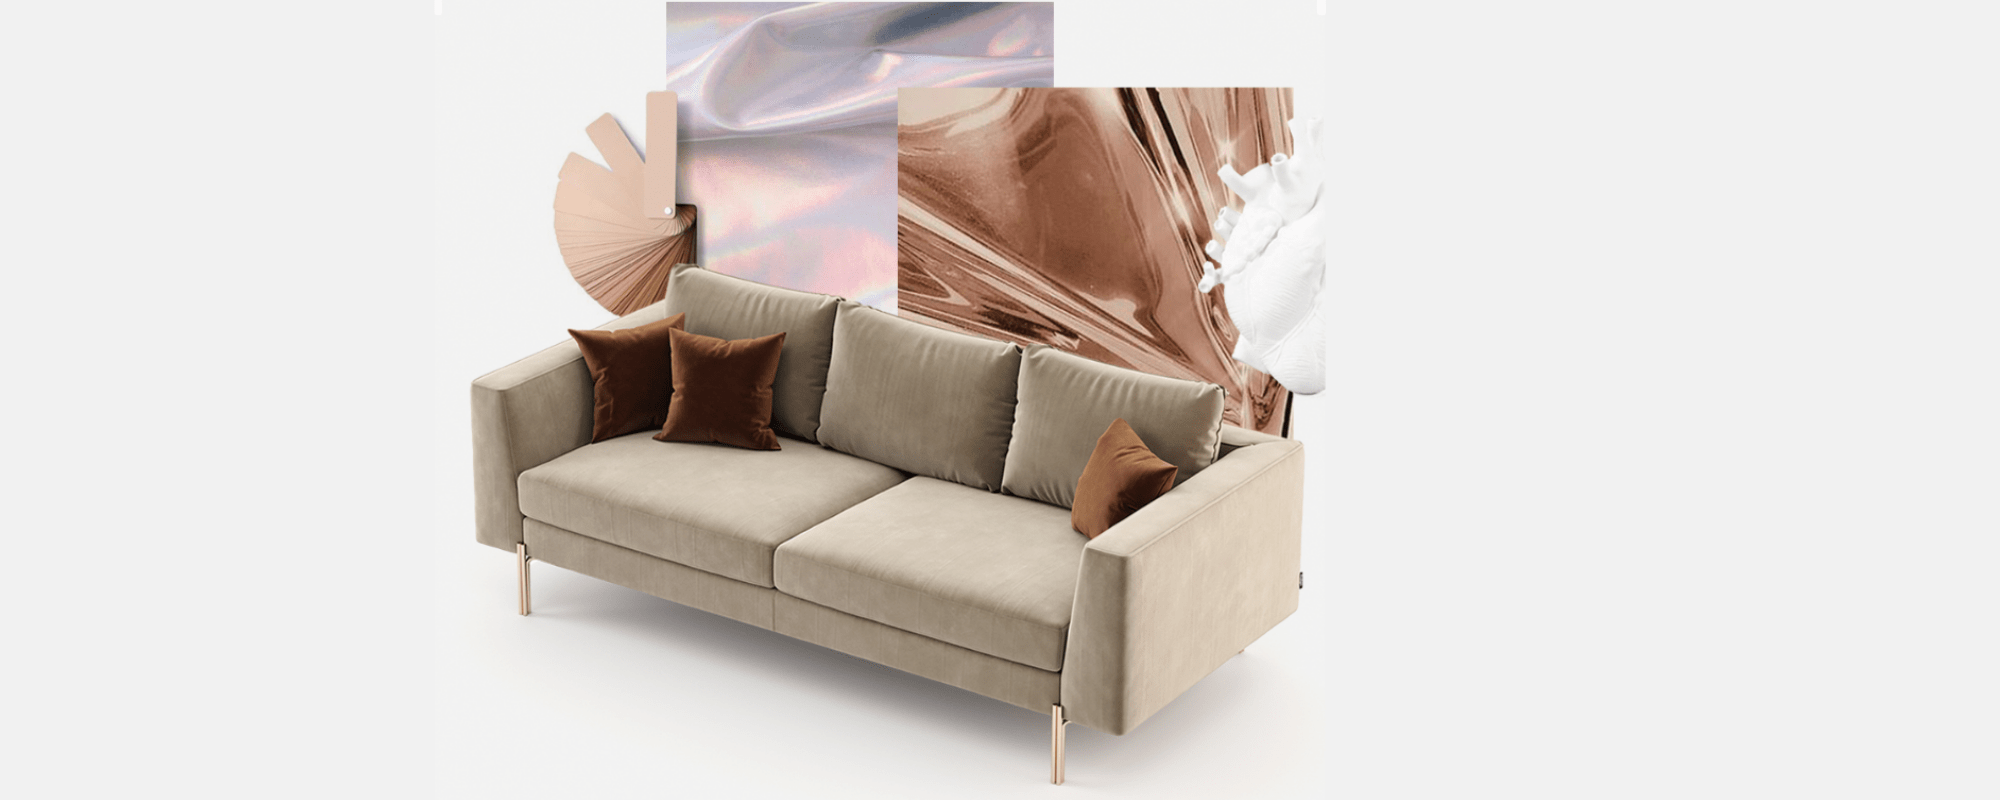 ULTIMATE UPHOLSTERY TRENDS